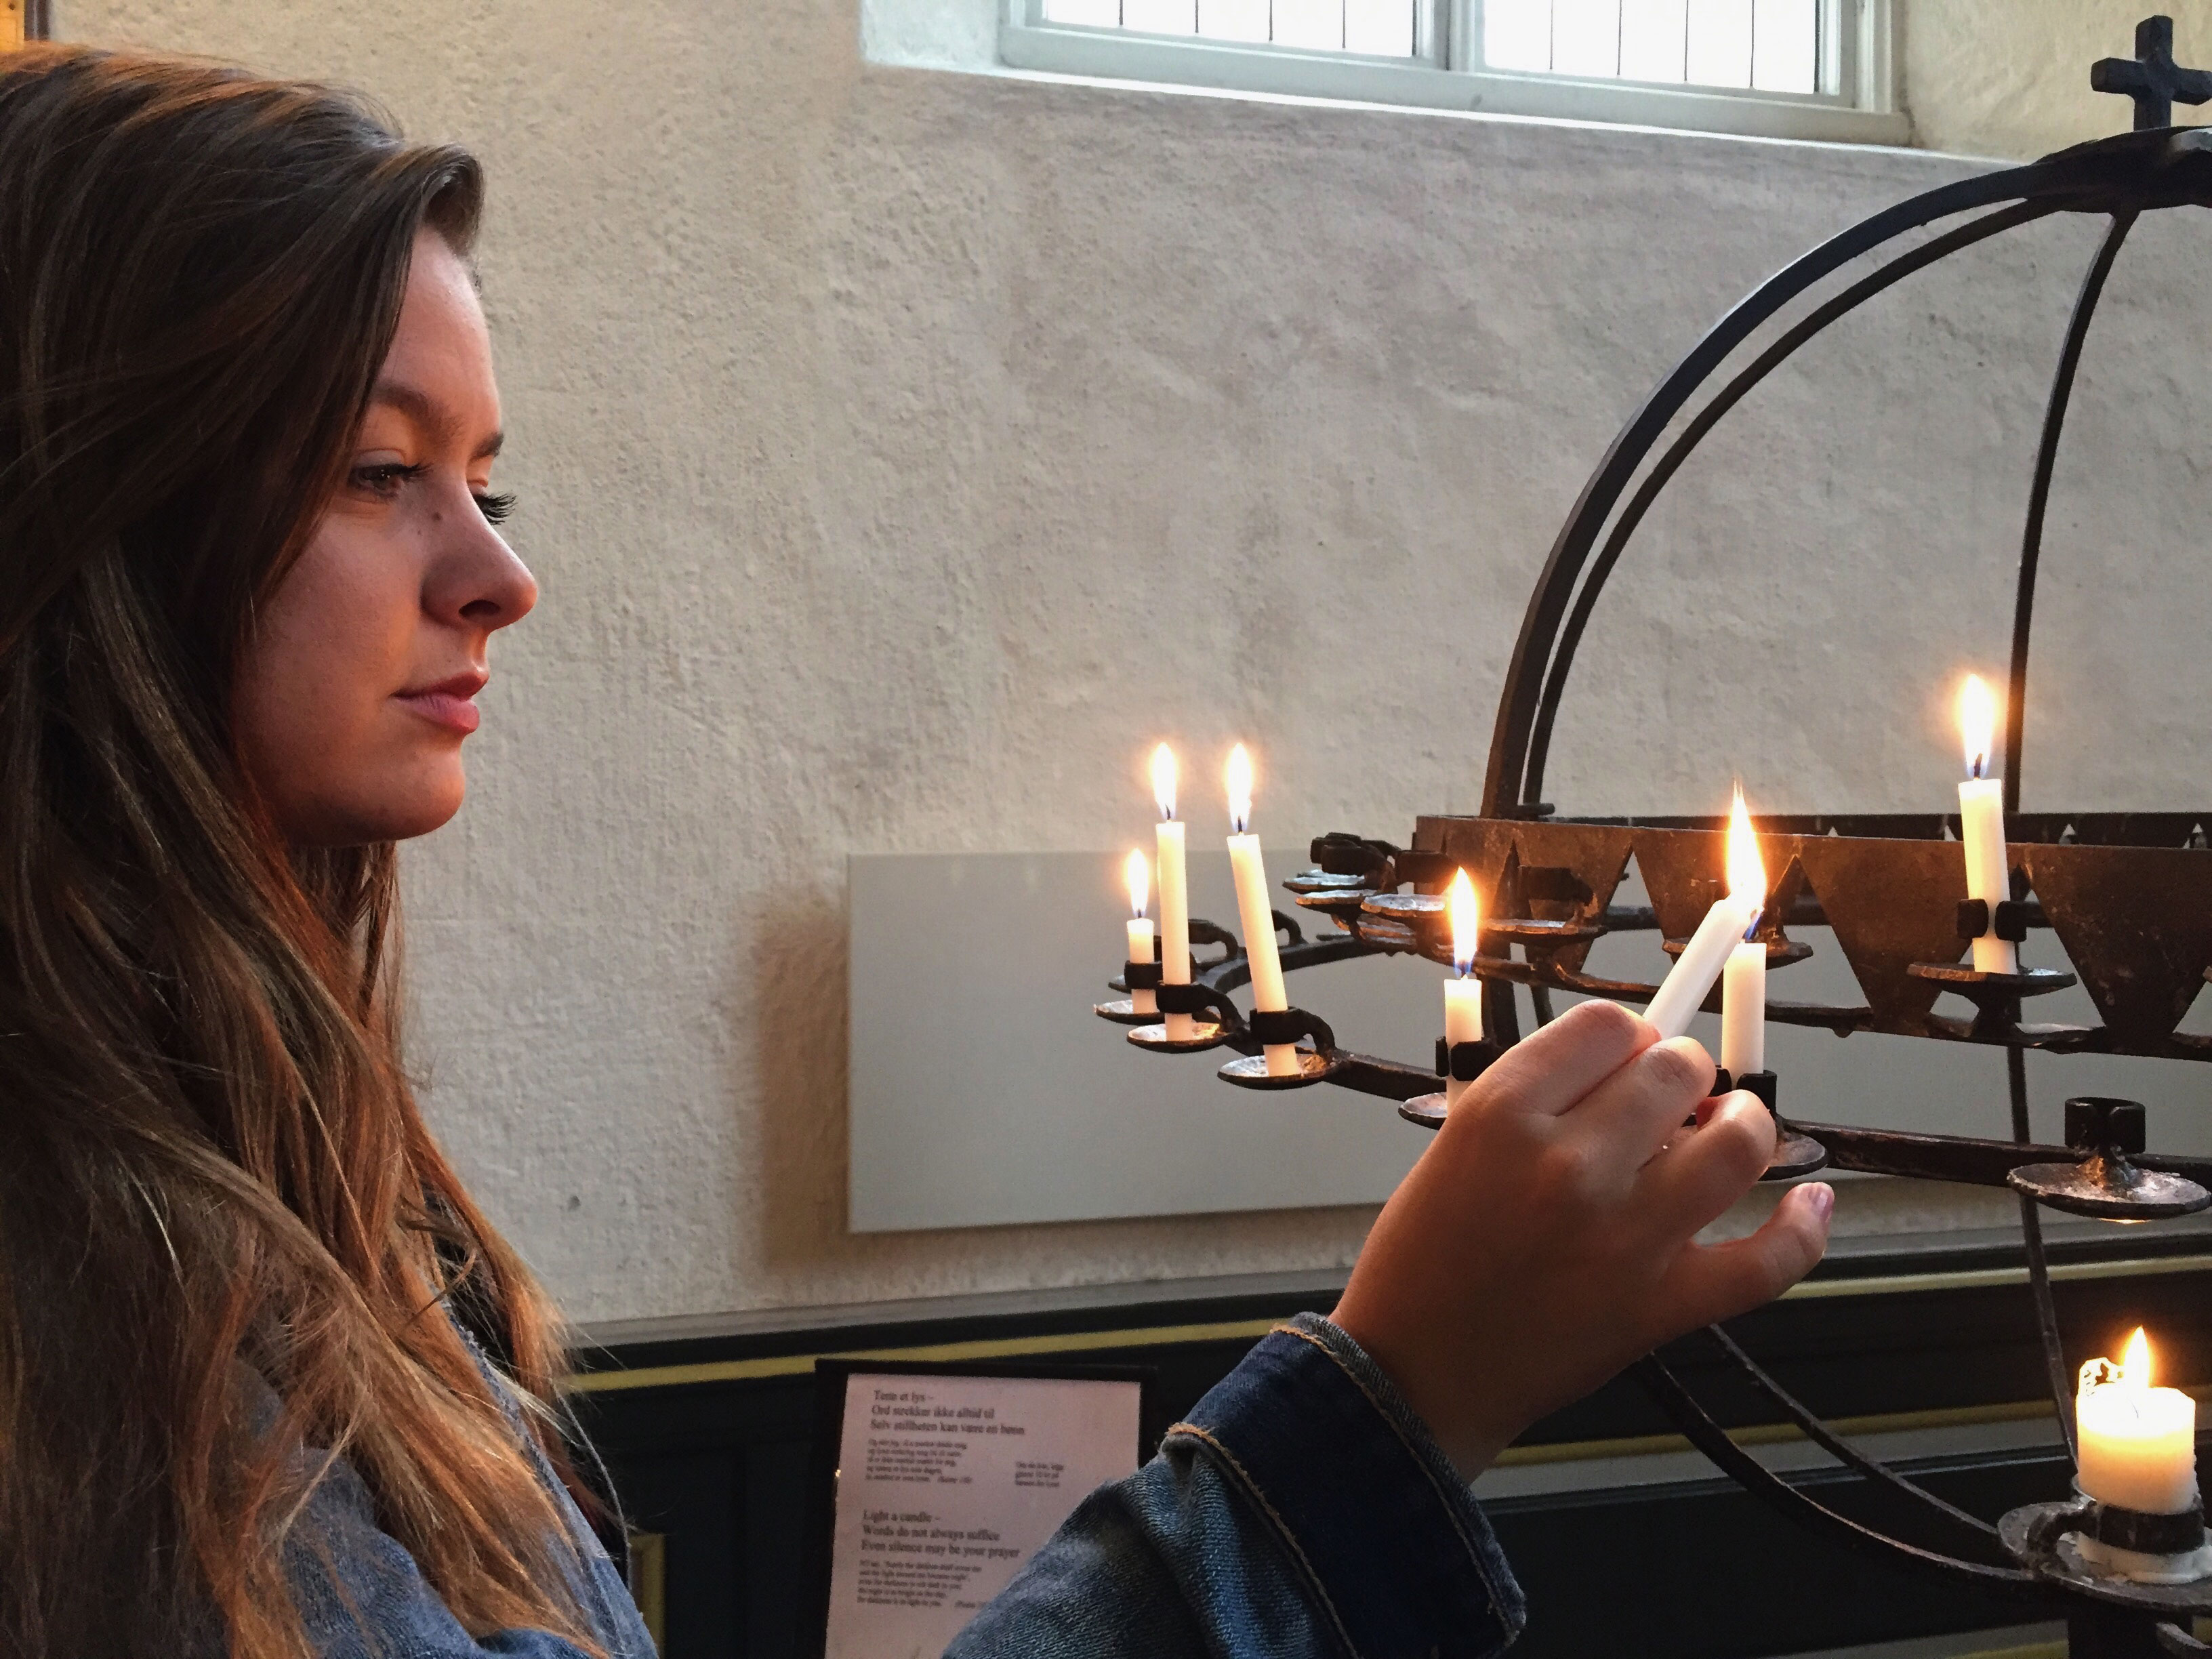 A student lights a candle in a church